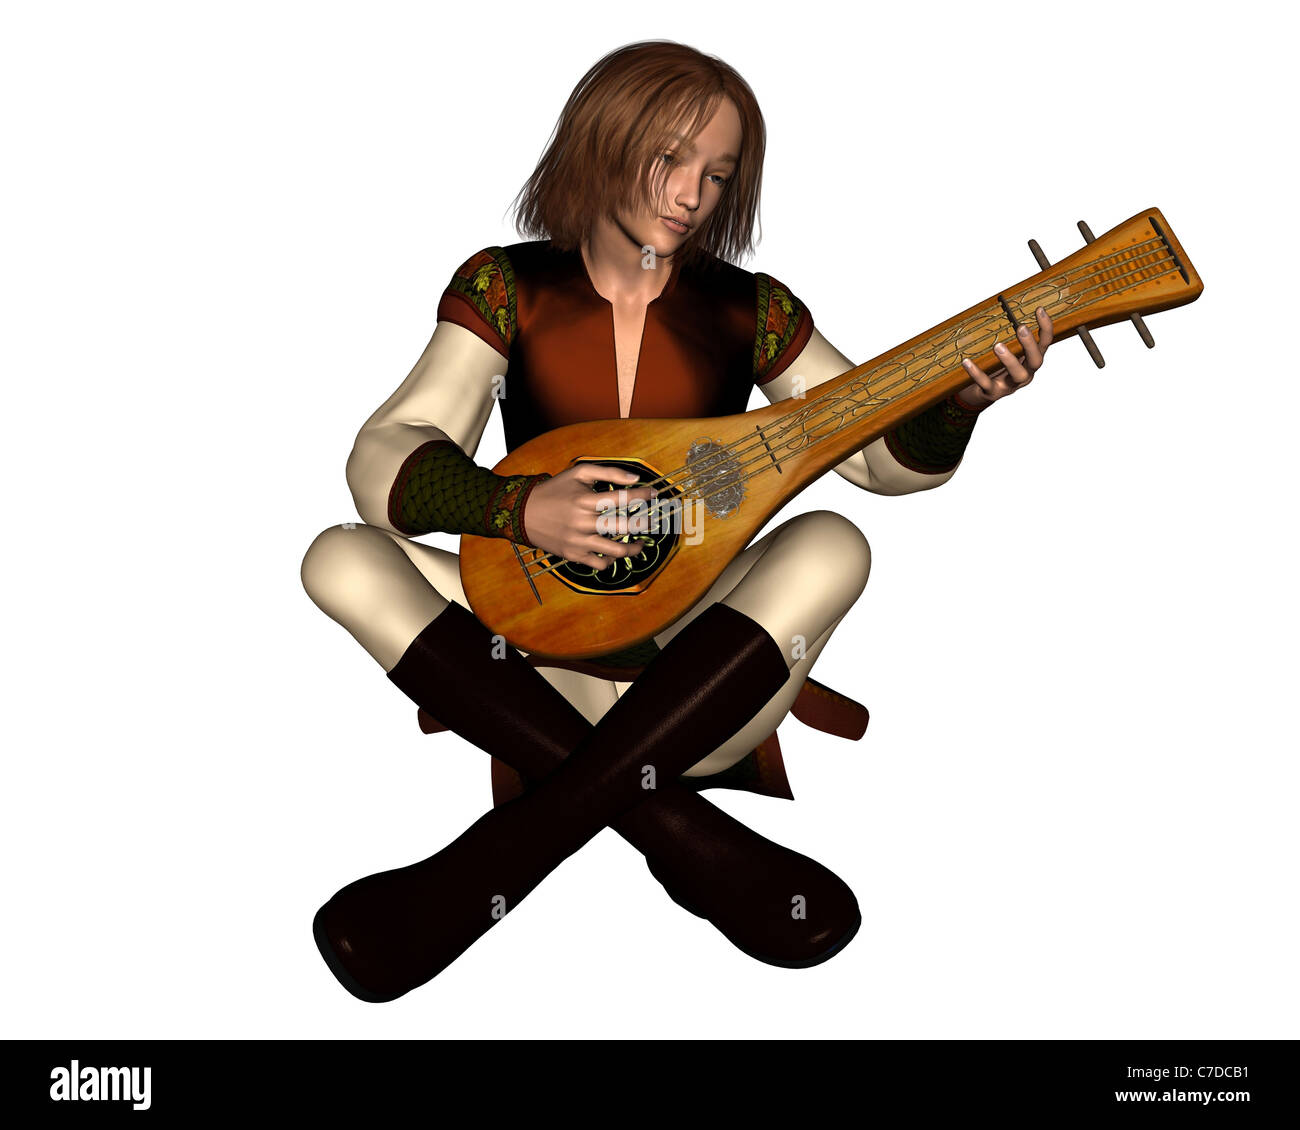 Young Medieval Minstrel with Lute - Stock Image